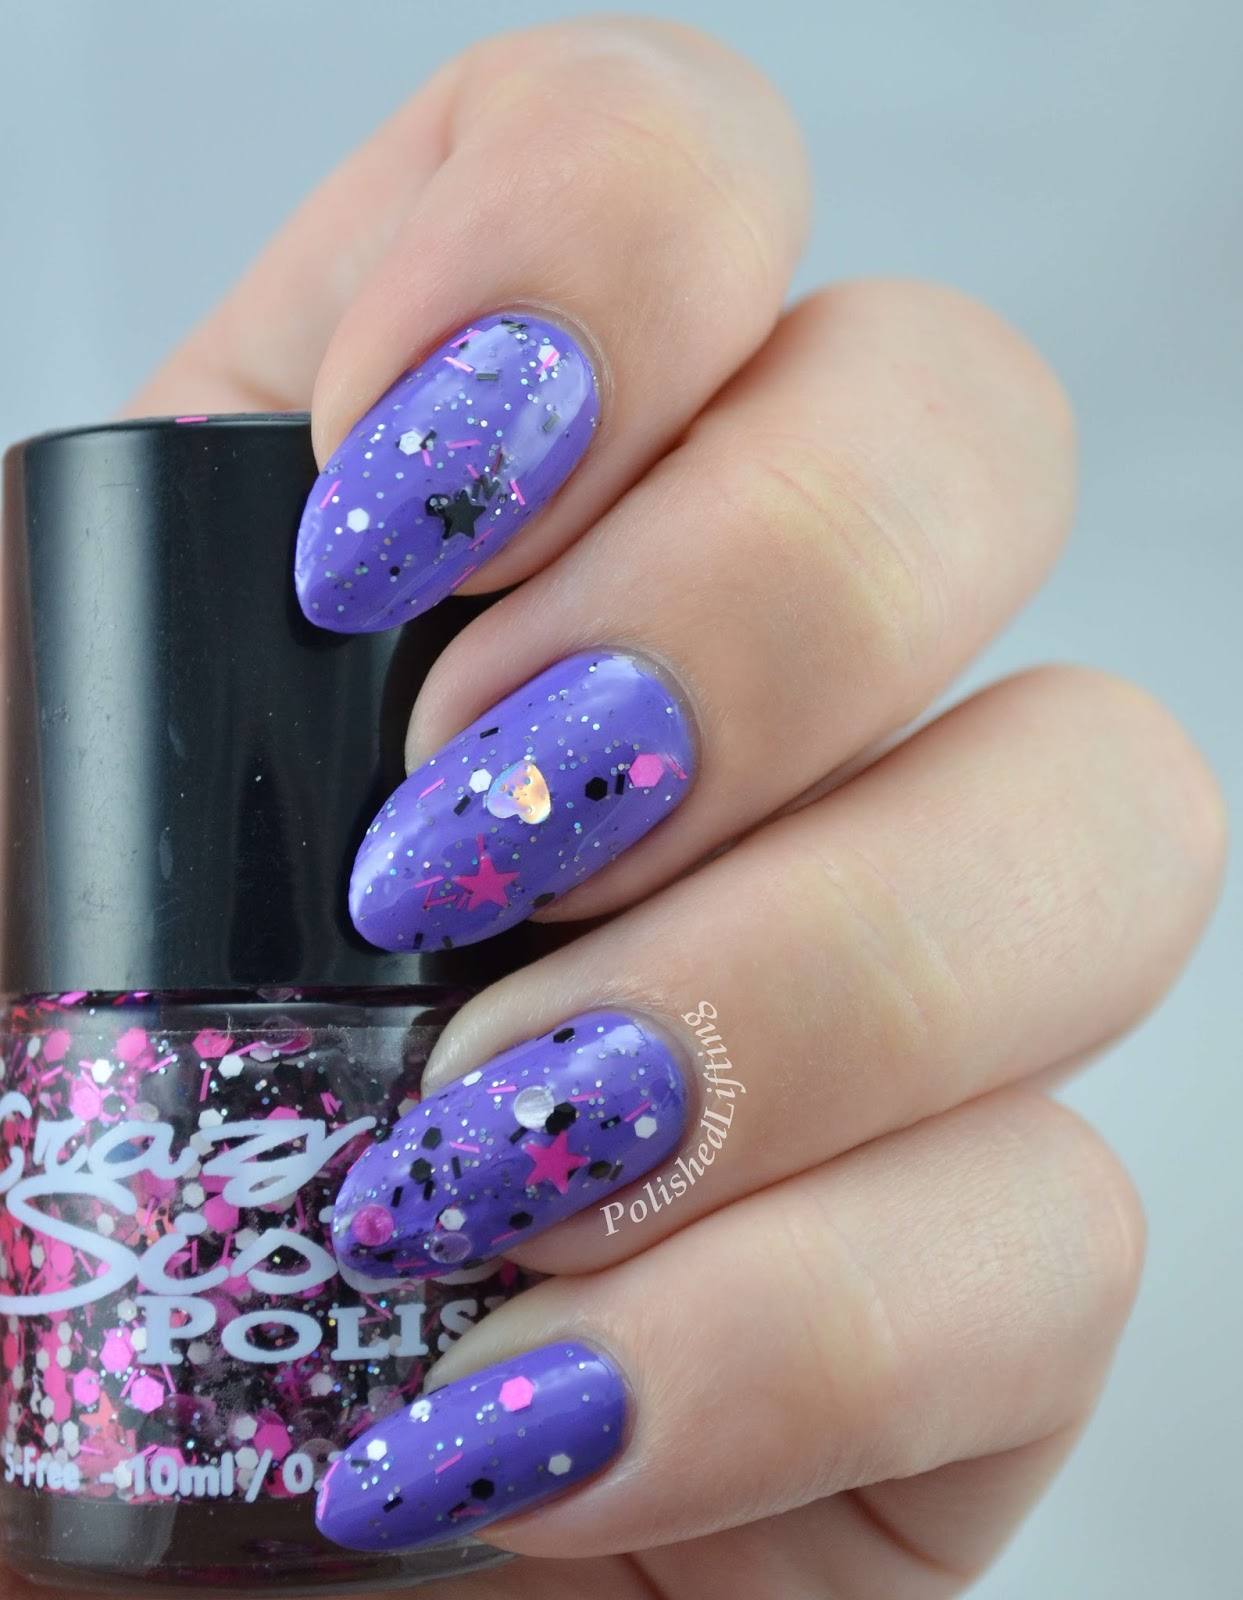 Crazy Sister Polish Pink Rock Star Color Clue Pucci-licious